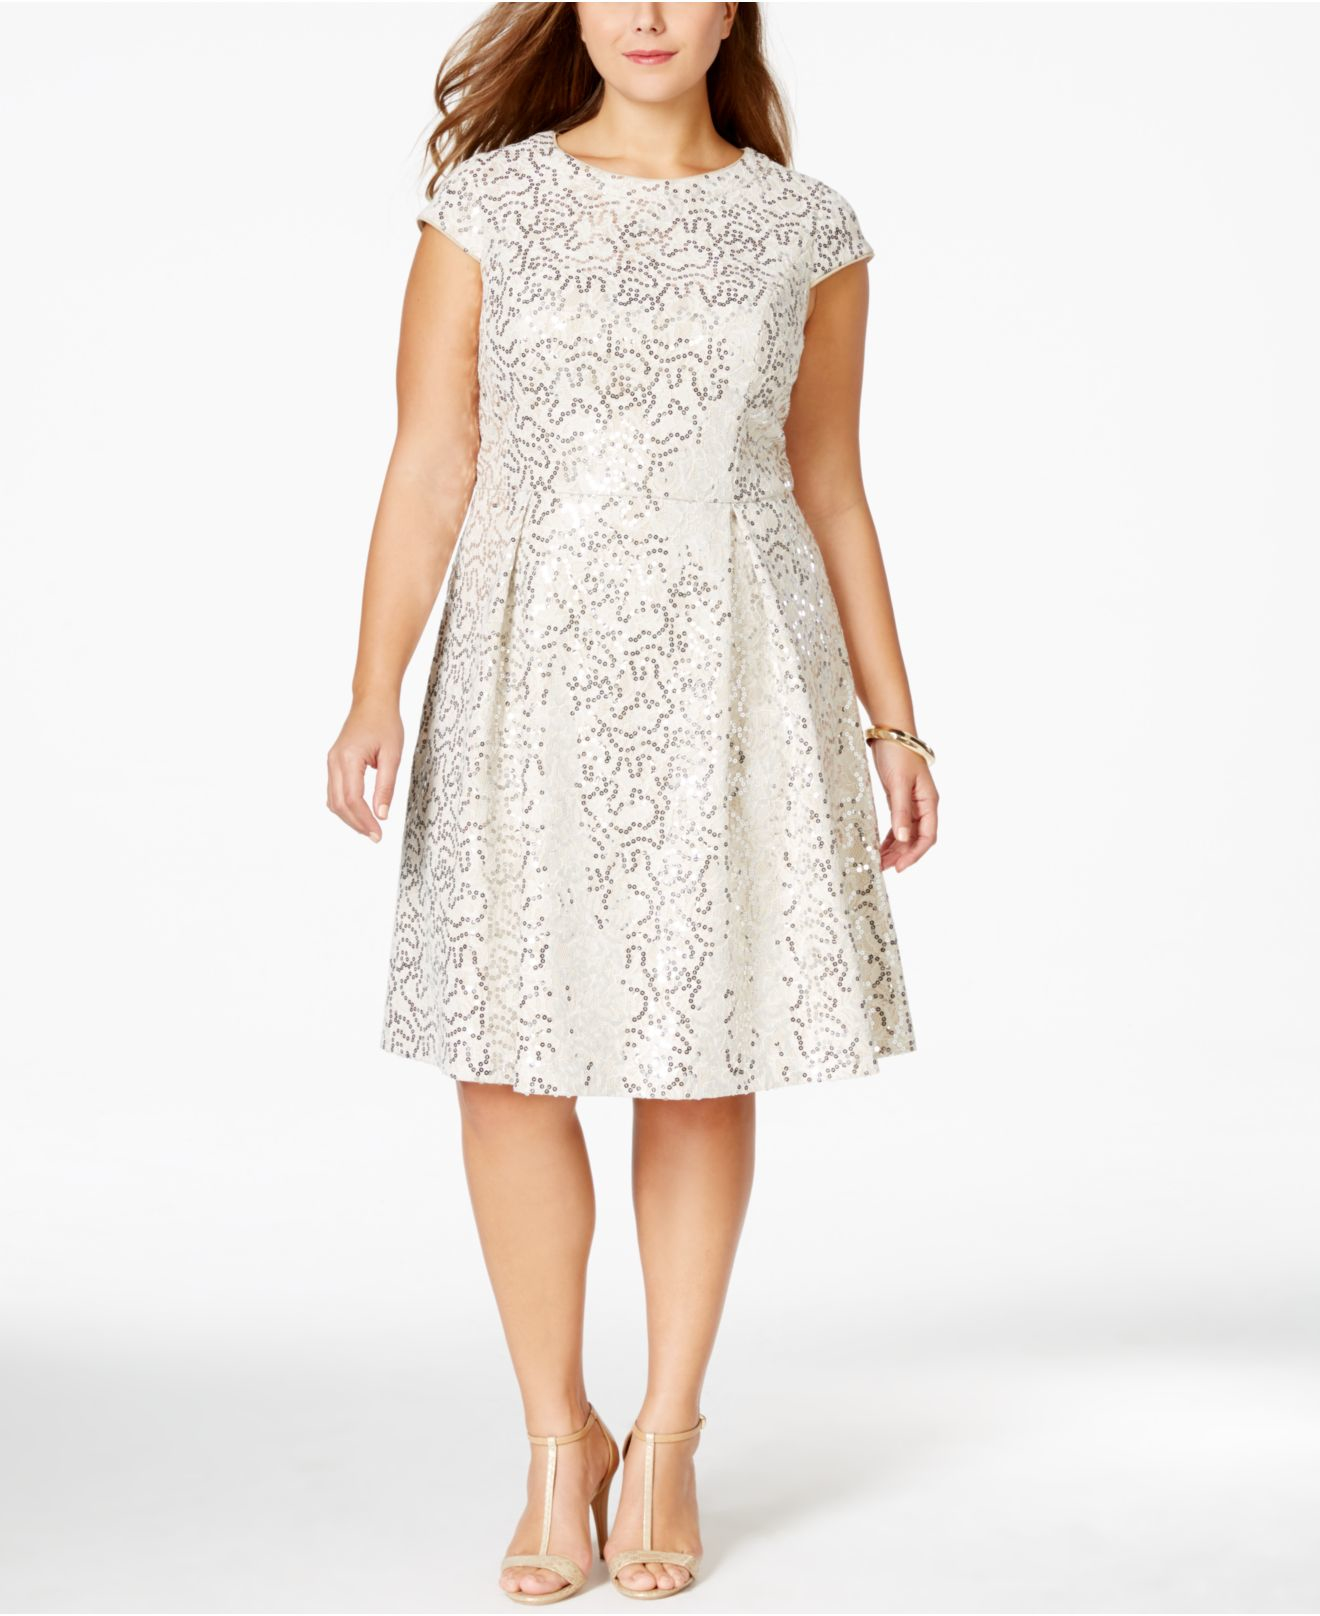 Calvin Klein Plus Size Sequined Flare Dress in White - Lyst